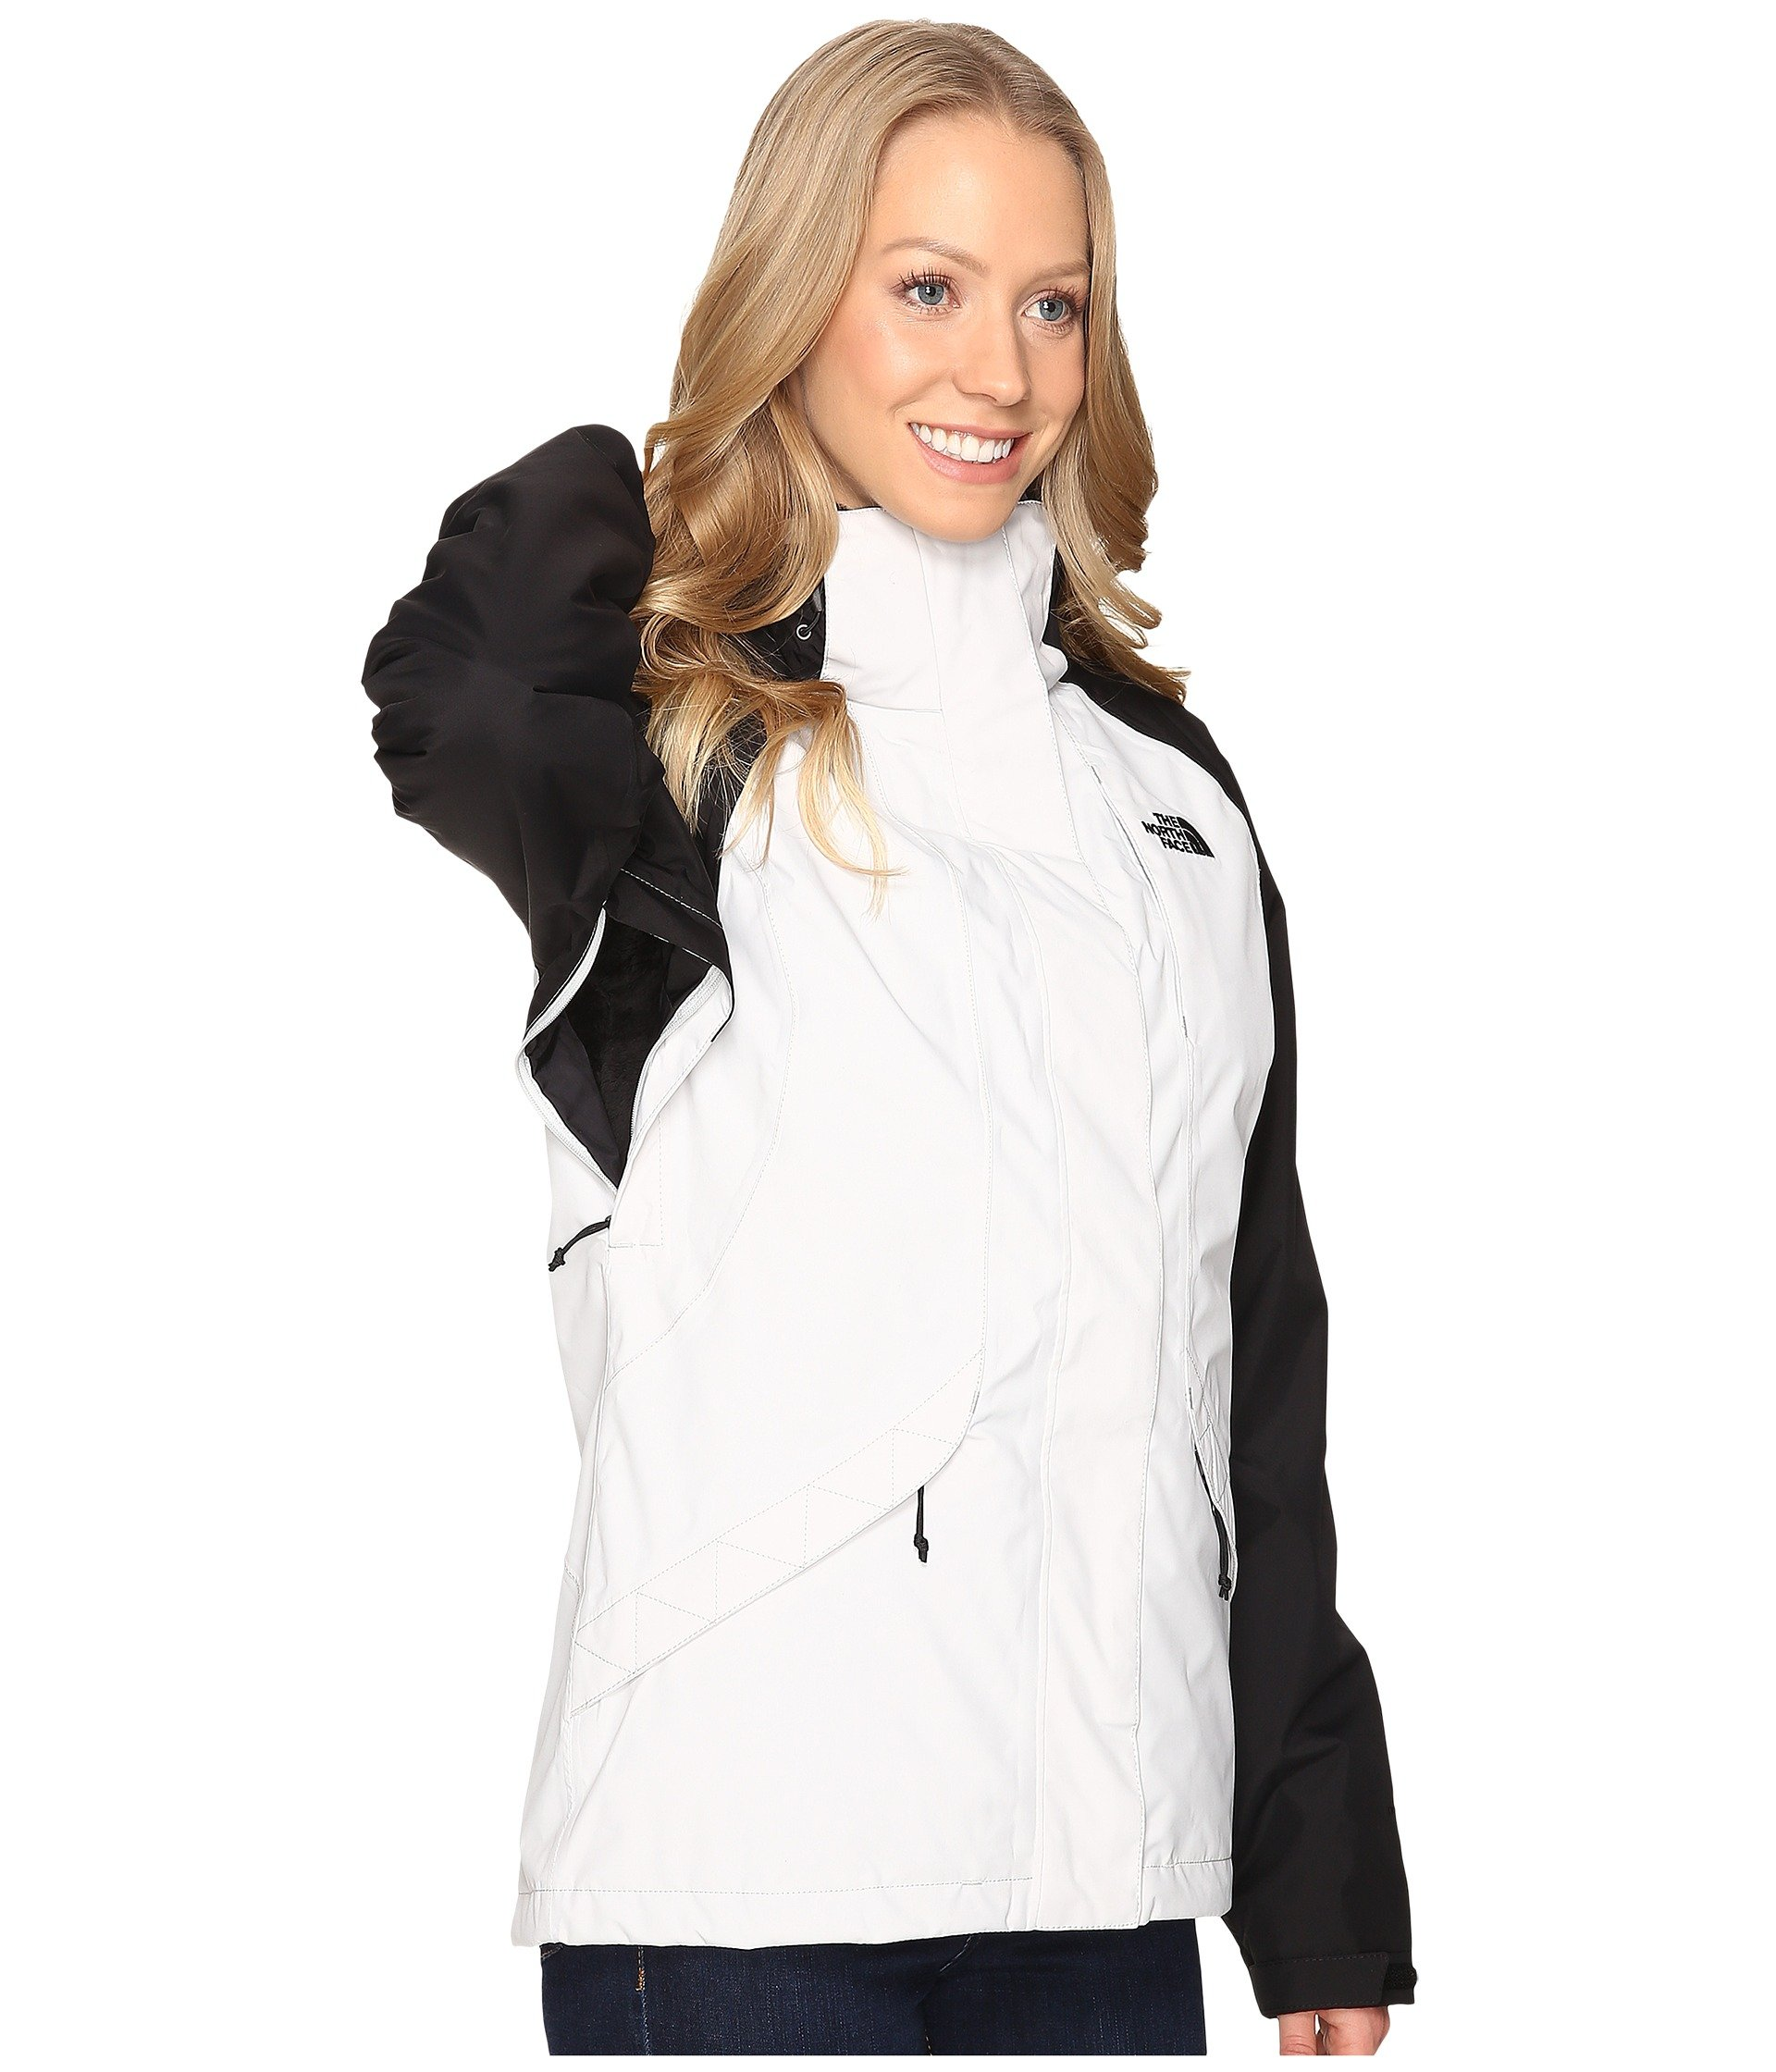 North Face Womens Boundary Triclimate Jacket - Large - Lunar Ice Grey/TNF Black by The North Face (Image #7)